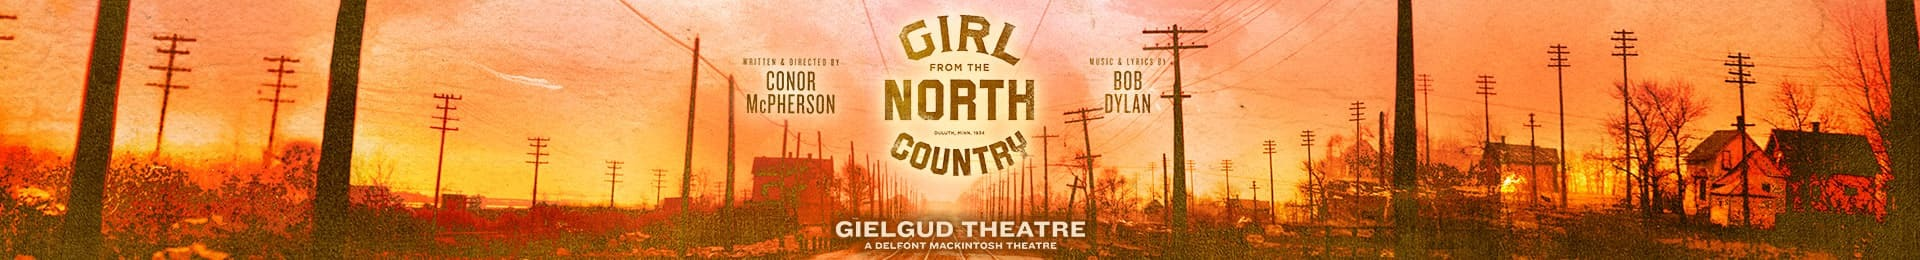 Girl from the North Country banner image